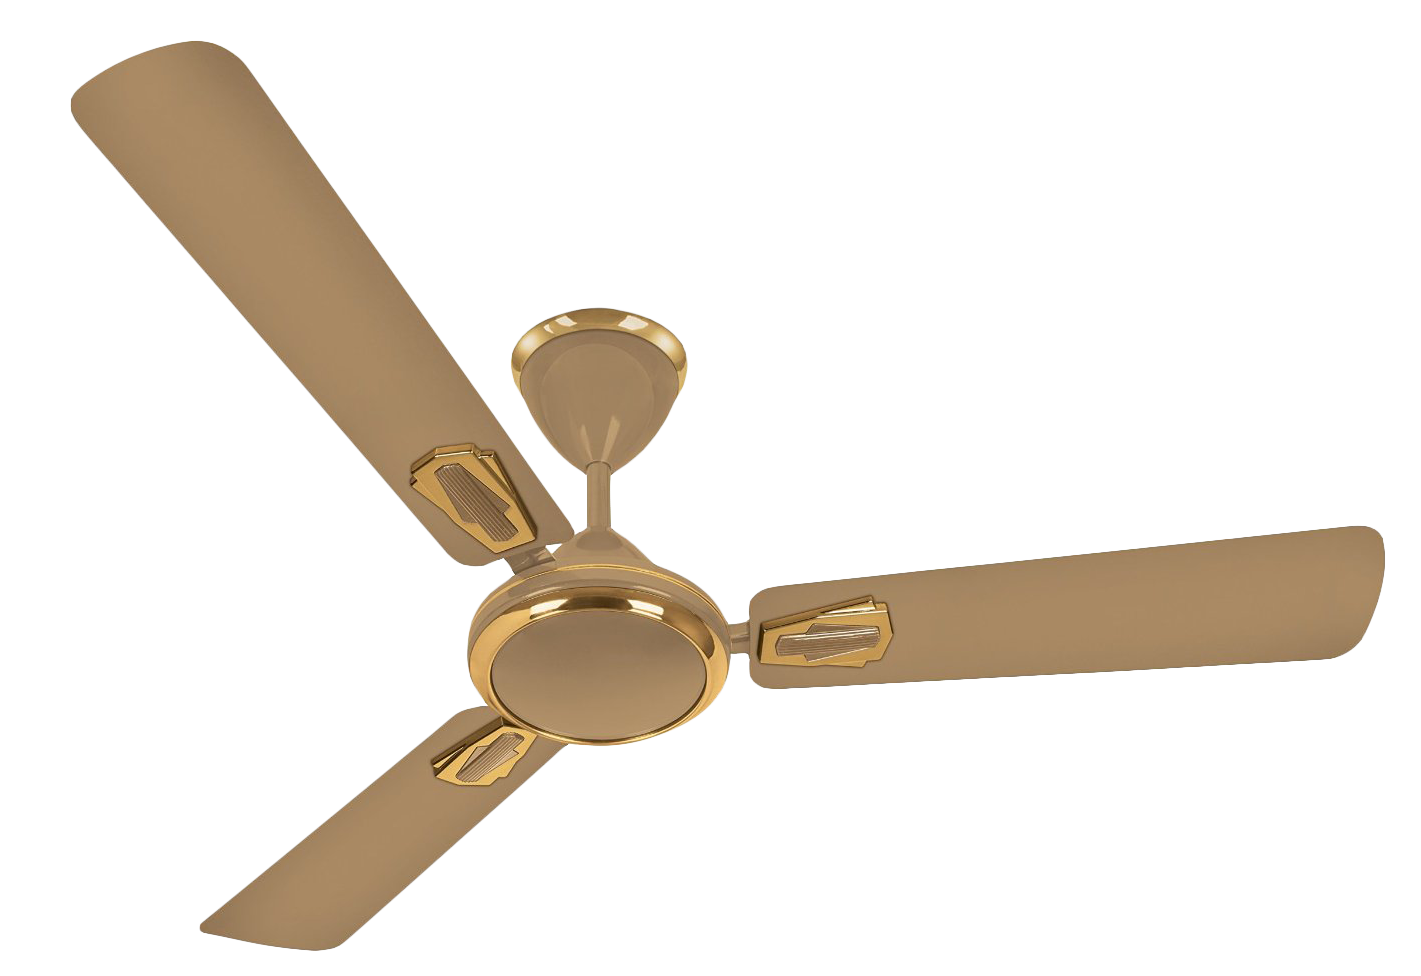 High Speed Ceiling Fan PNG Image